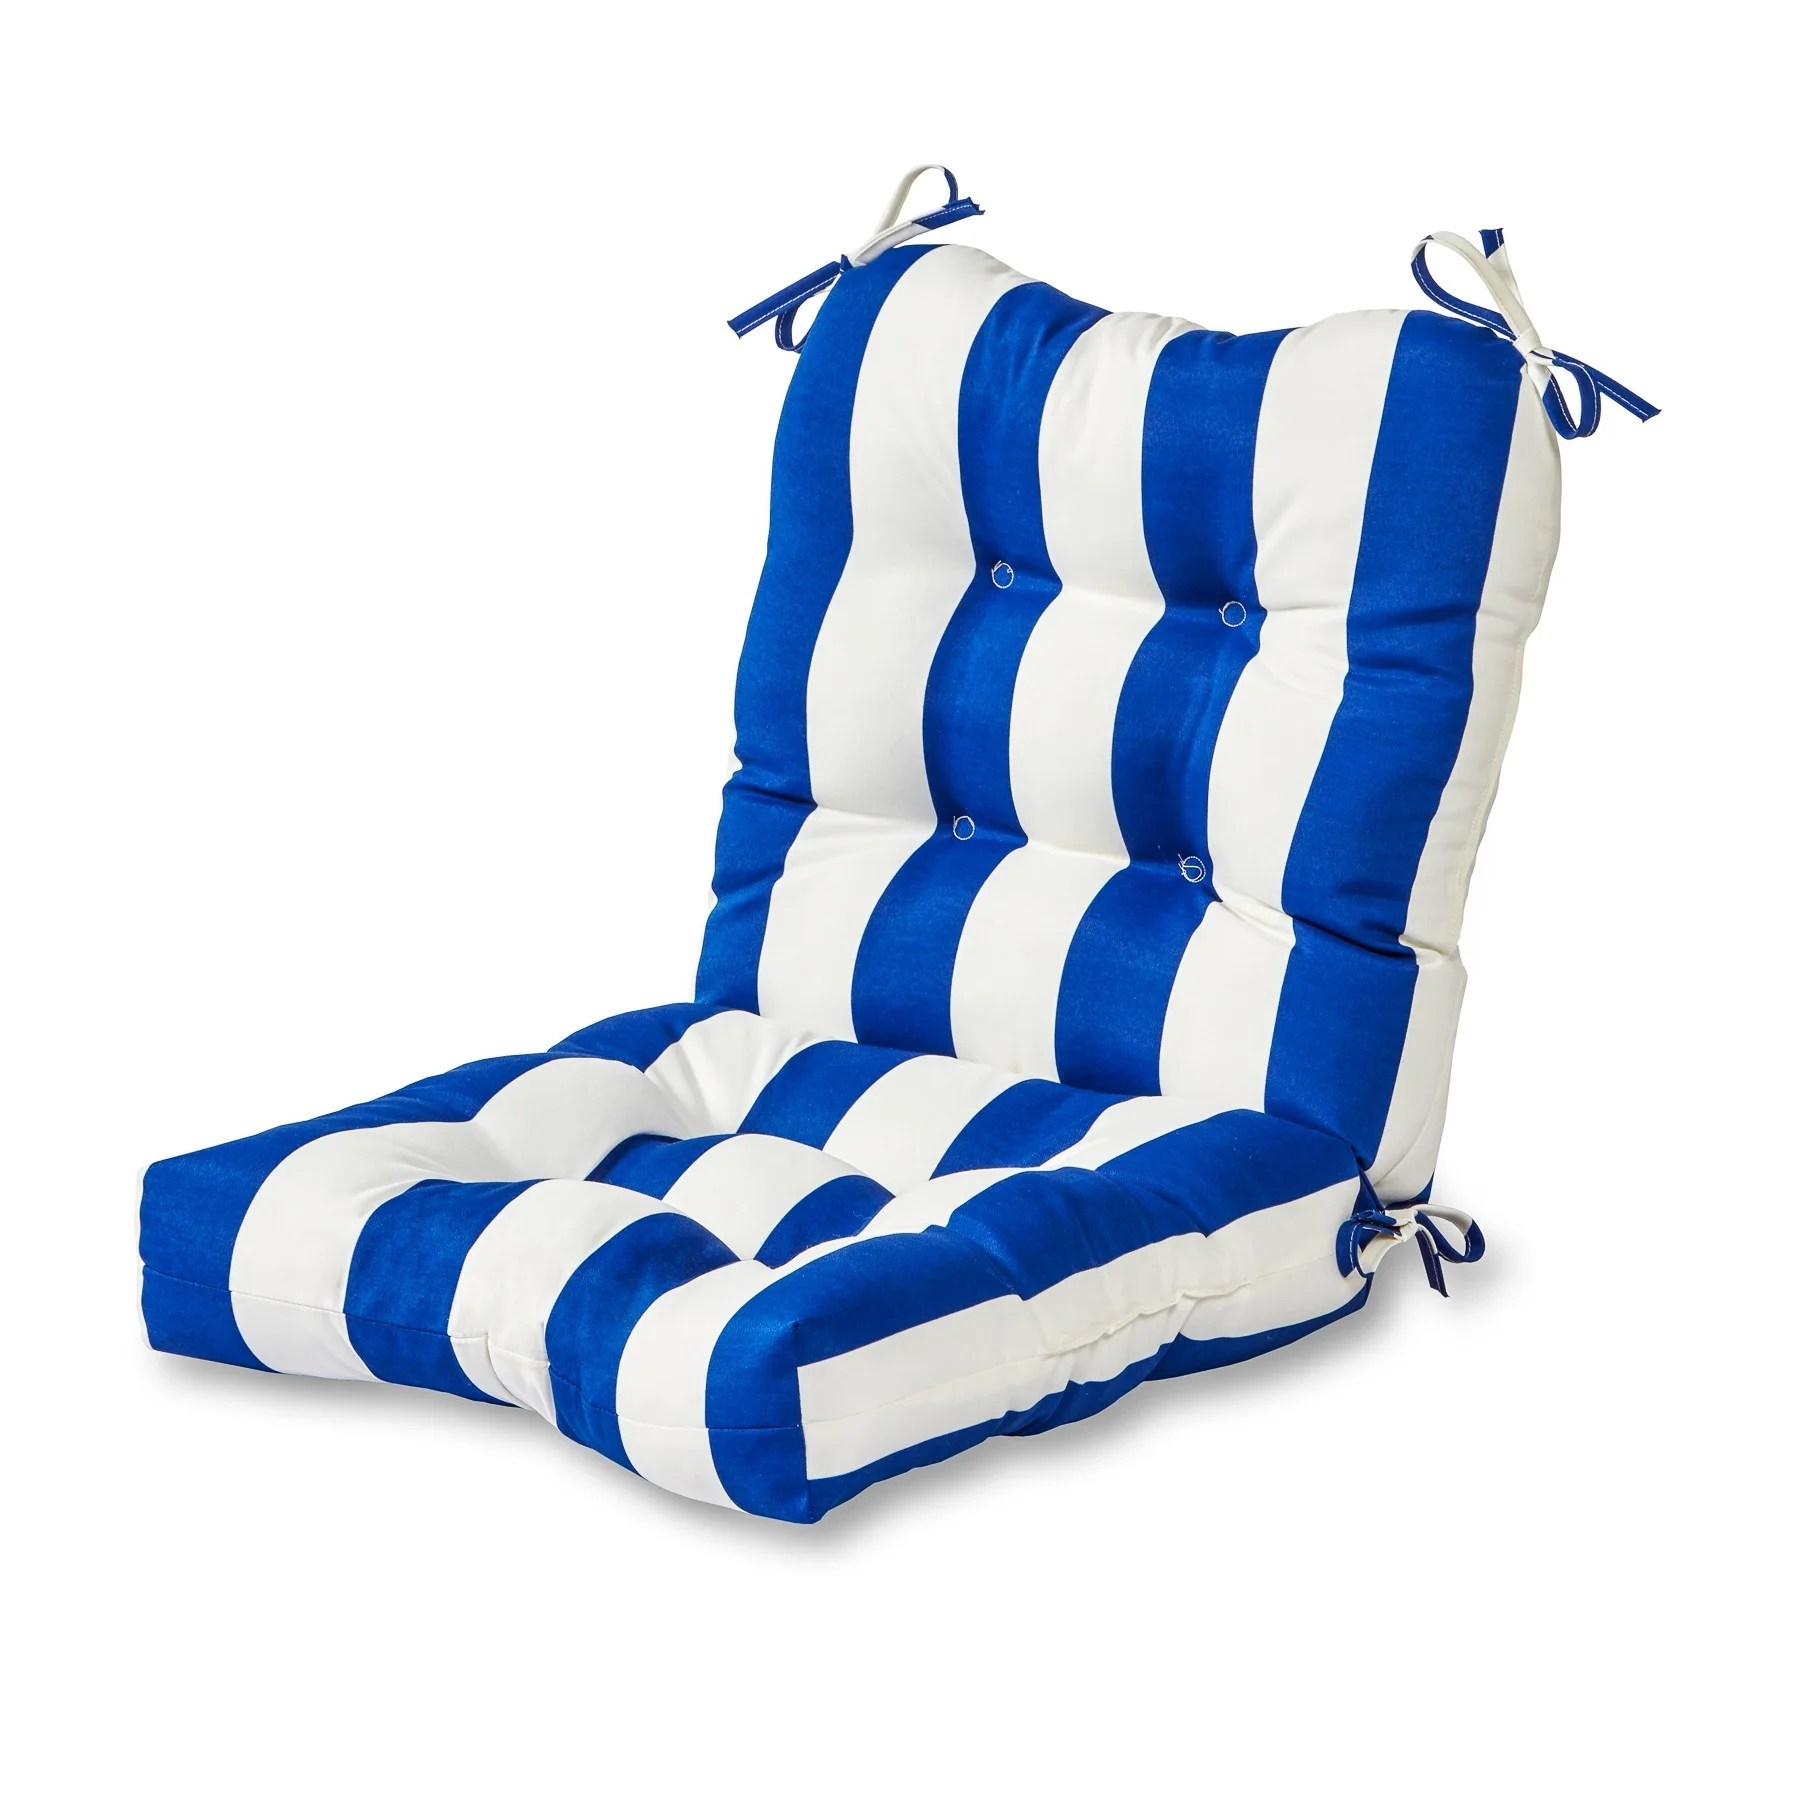 brentwood originals chair pads cushion covers for chairs outdoor cabana stripe ebay